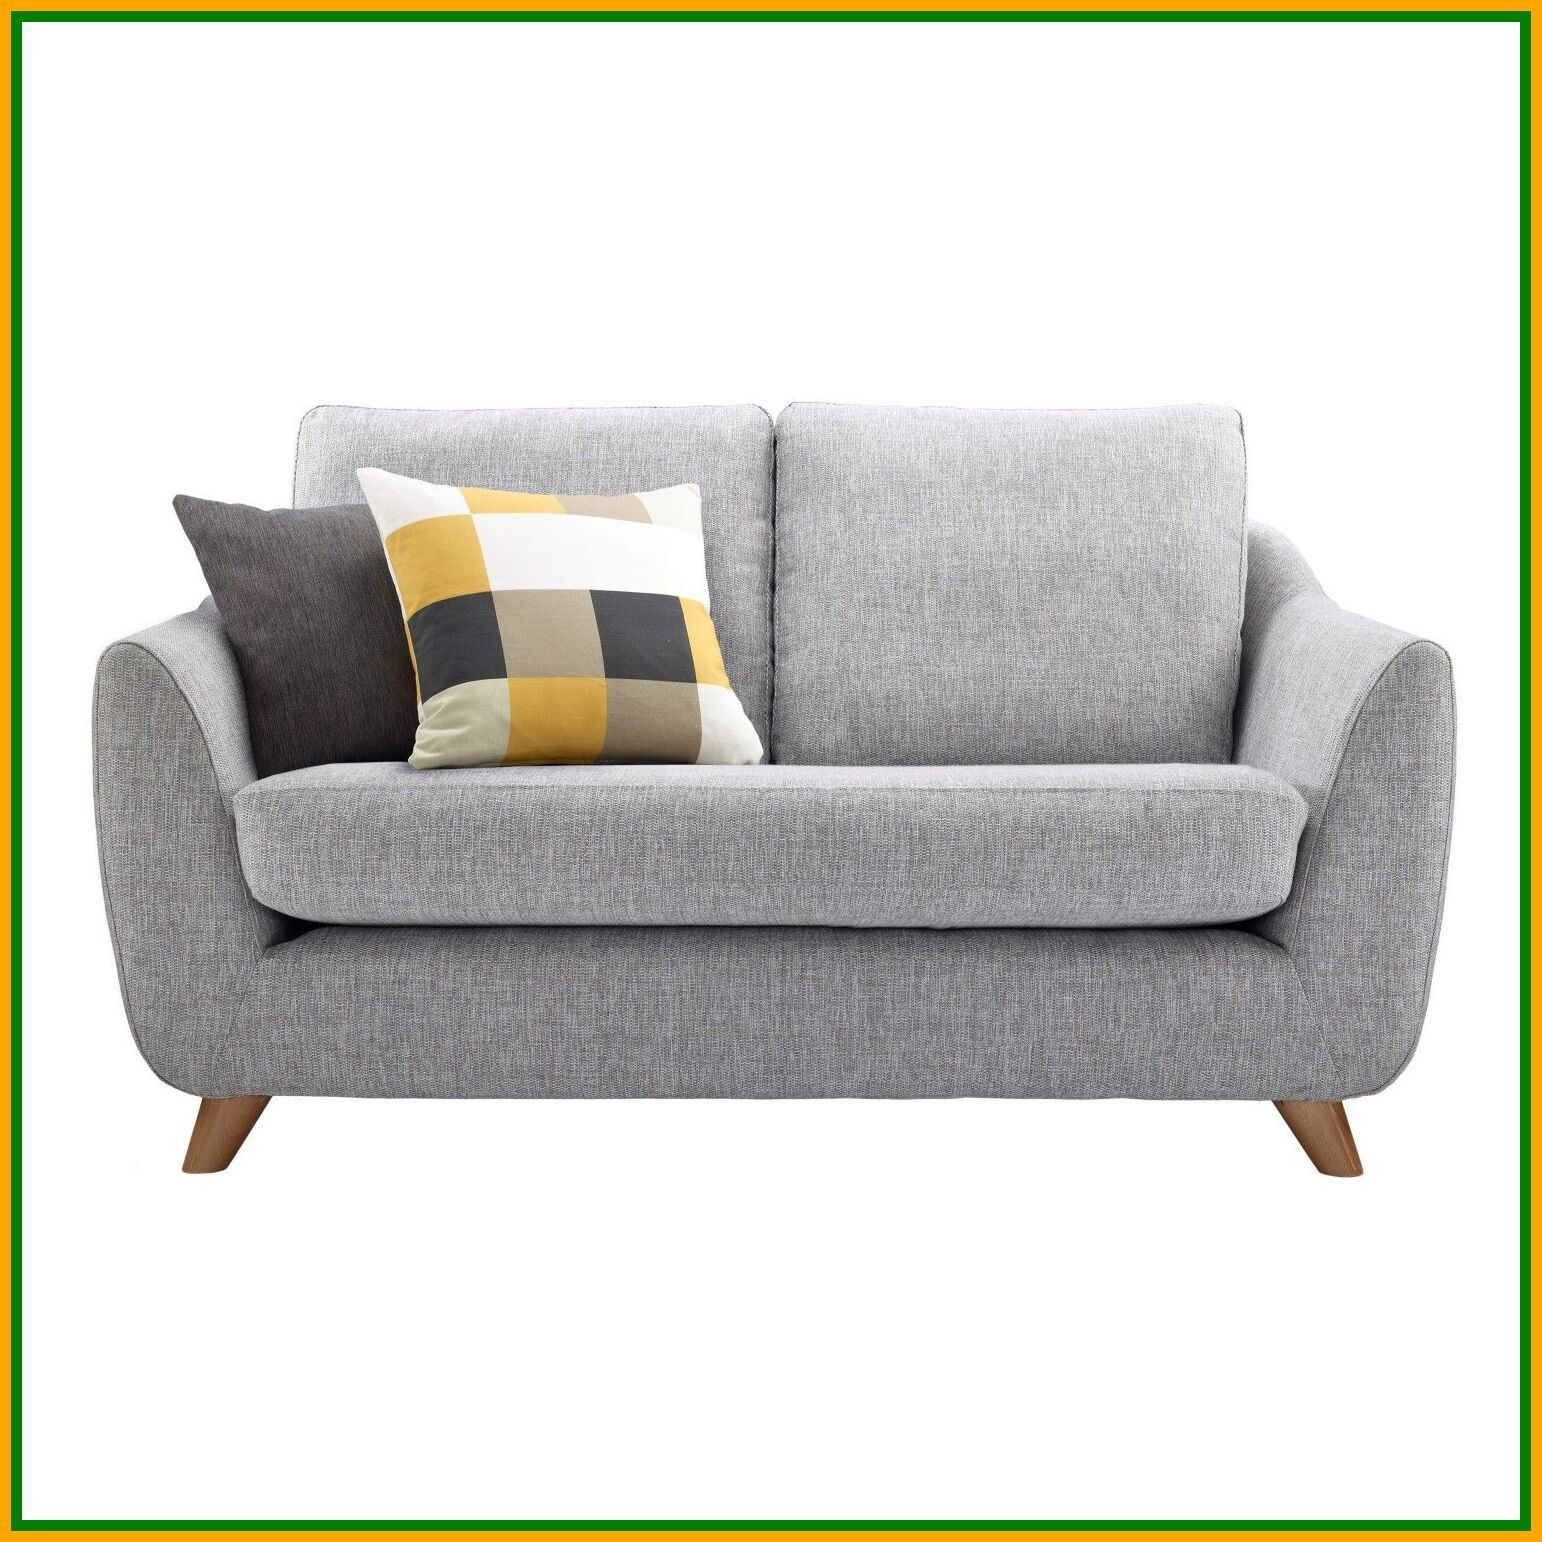 92 Reference Of Small Grey Office Sofa In 2020 Couches For Small Spaces Cheap Couch Cheap Sofa Beds